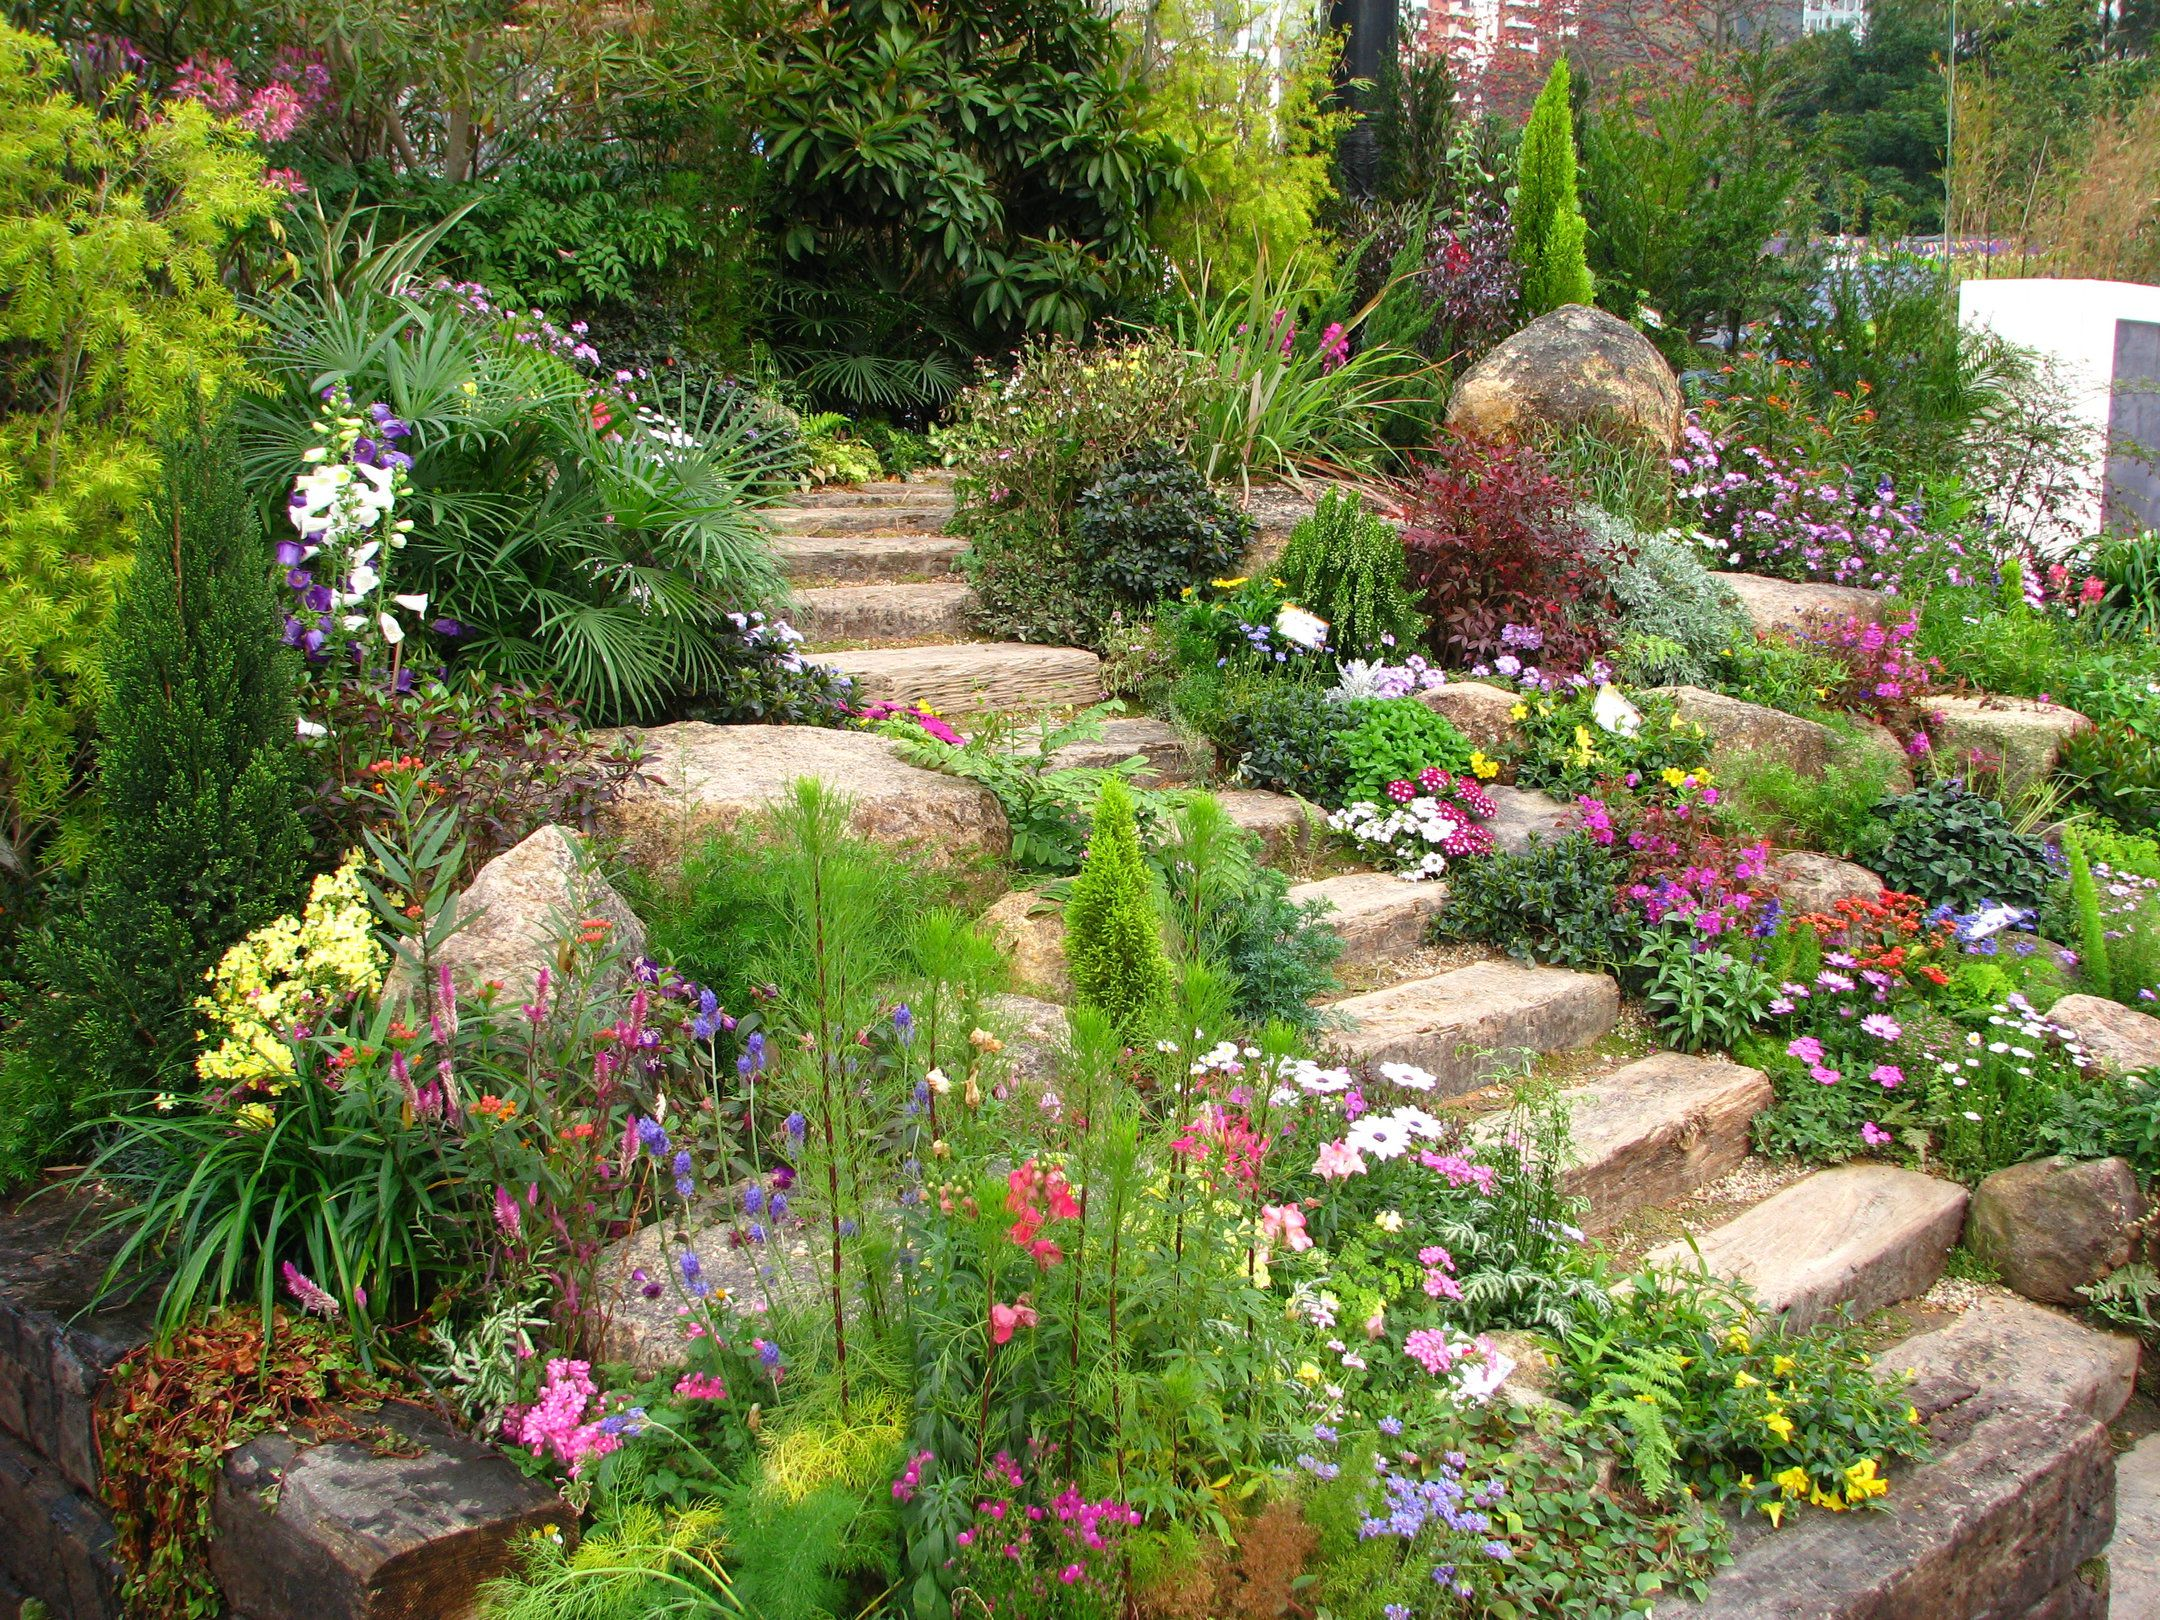 Landscaping ideas and answers - the landscape design site ...